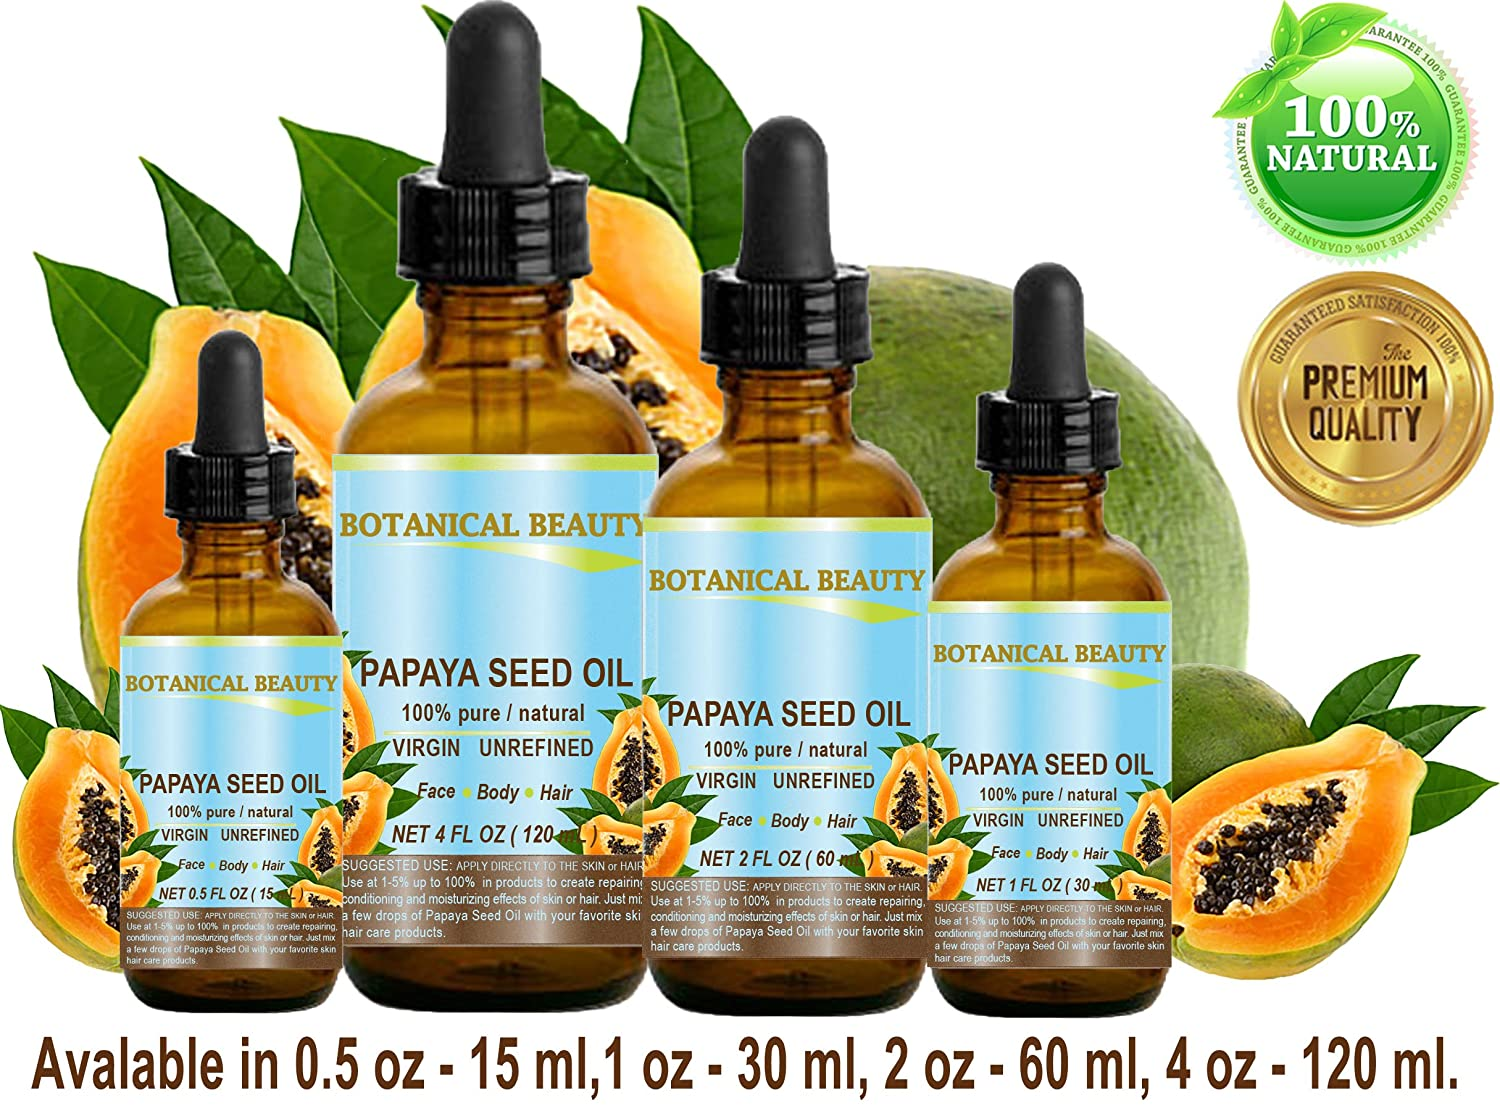 PAPAYA SEED OIL WILD GROWTH. 100 Pure Natural Undiluted Virgin Unrefined Cold Pressed Carrier Oil. For Skin, Hair, Lip and Nail Care 4 Fl. oz. – 120 ml.